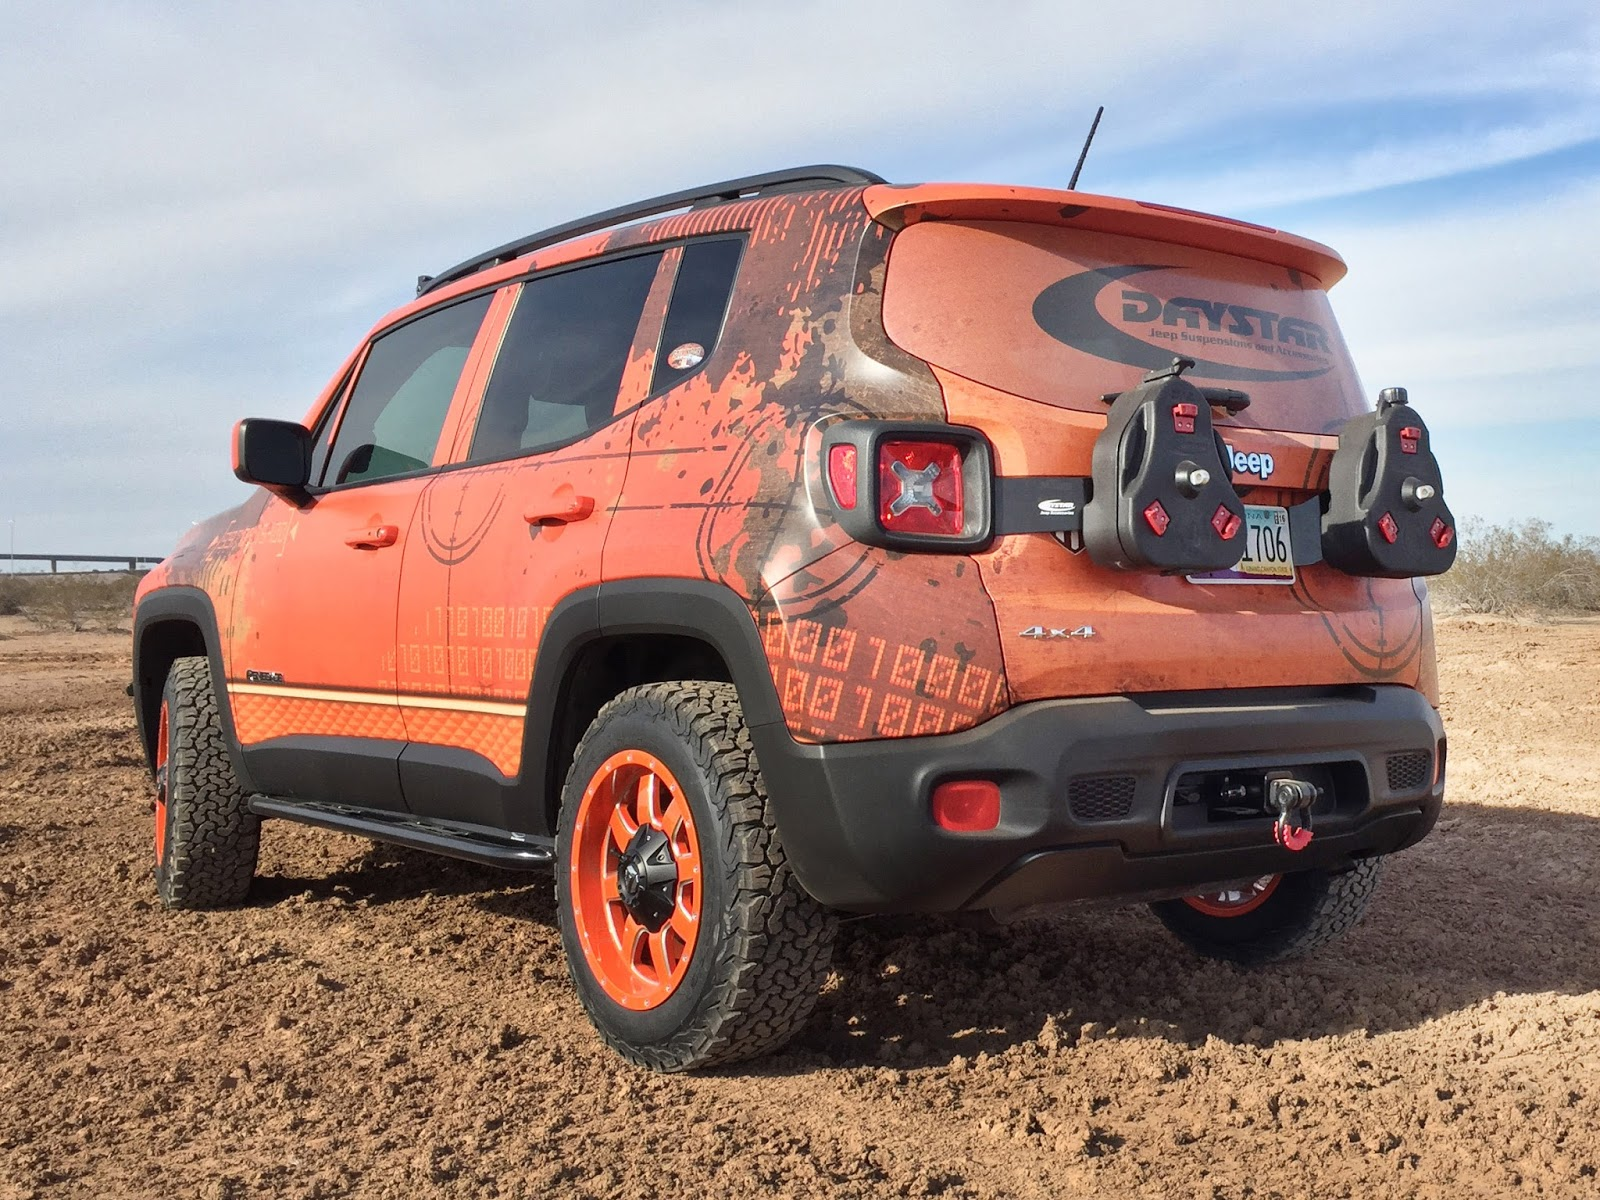 Renegade Daystar Lift >> Jeep Renegade Gets Some Serious Off Road Parts | Subcompact Culture - The small car blog